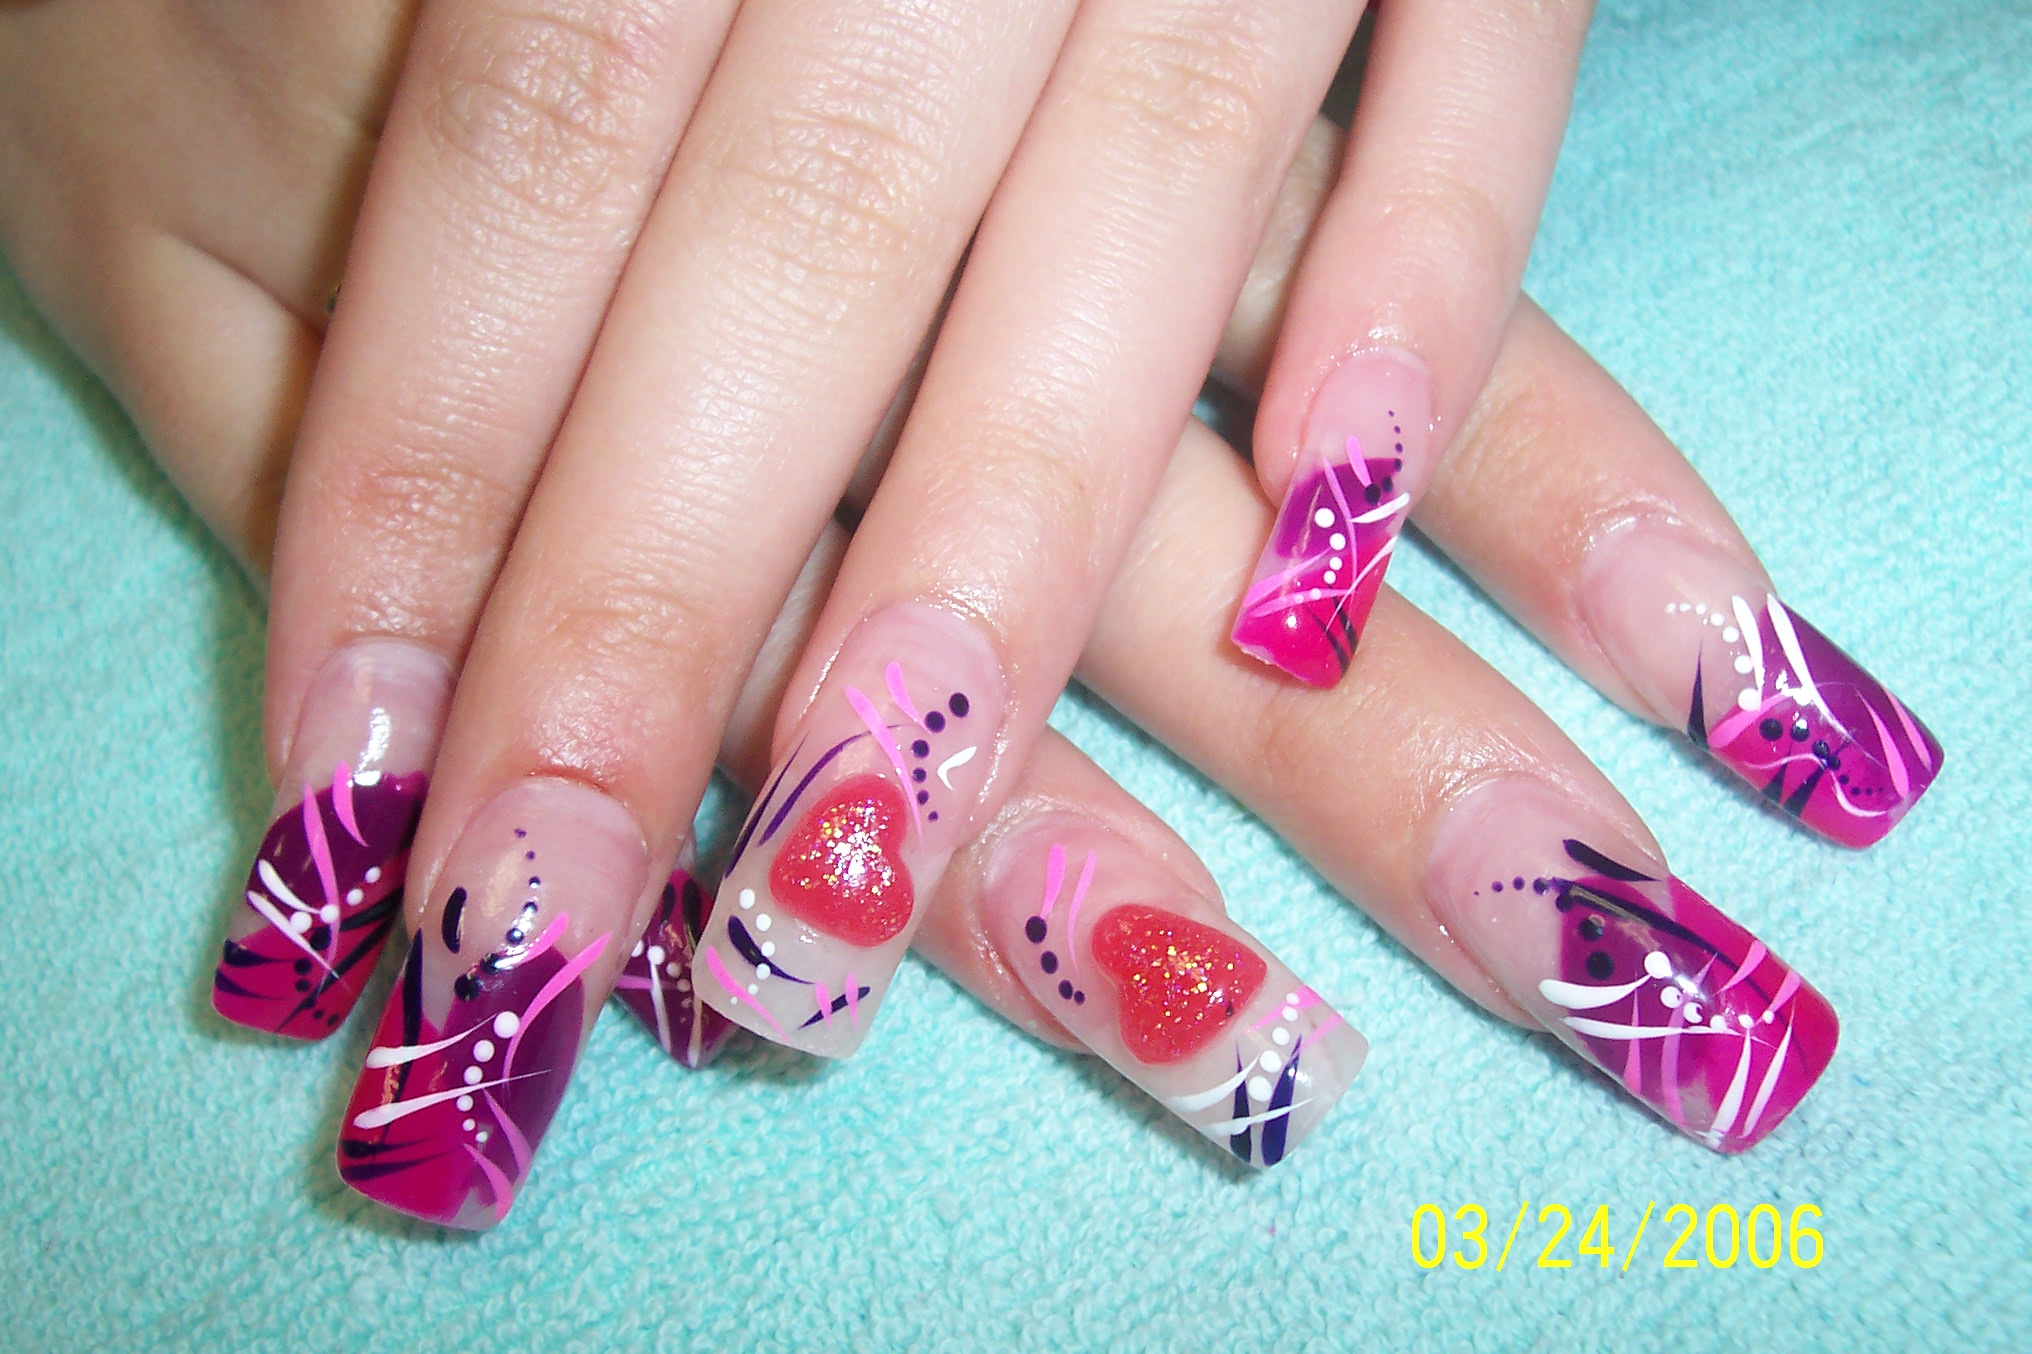 Nail Design Pictures Designs 2014 Tumblr Step By For Short Nails With Rhinestones Bows Acrylic Summber Ideas